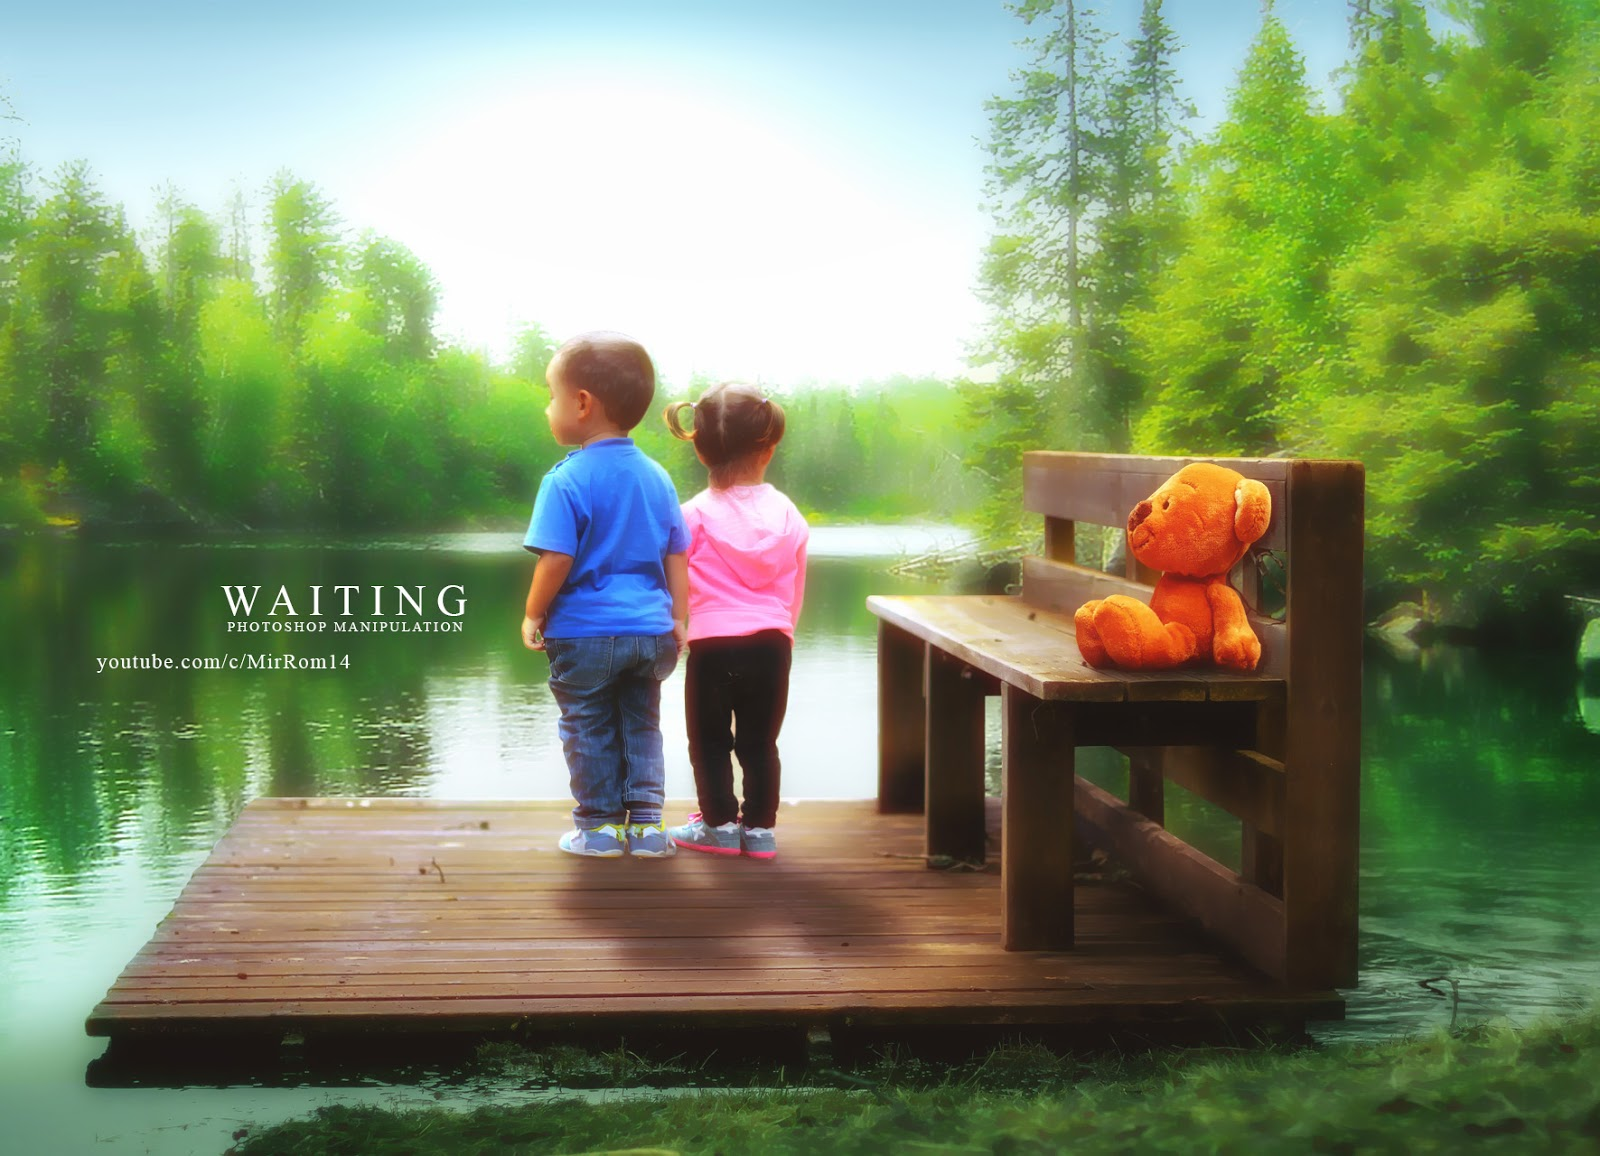 Waiting - Photoshop Photo Manipulation Tutorial